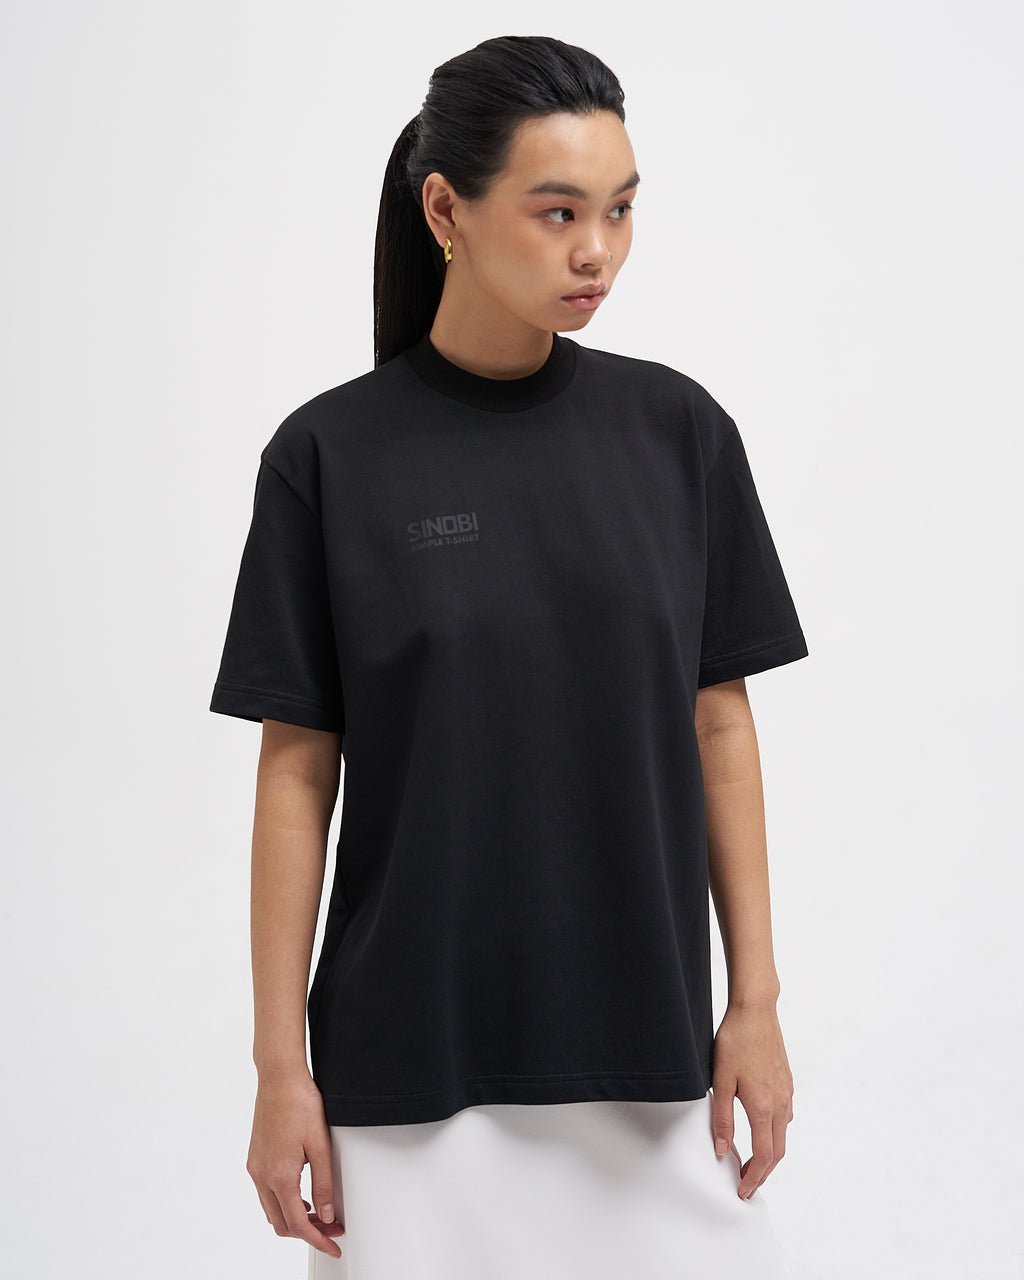 BLACK SIMPLE T-SHIRT - SINOBI